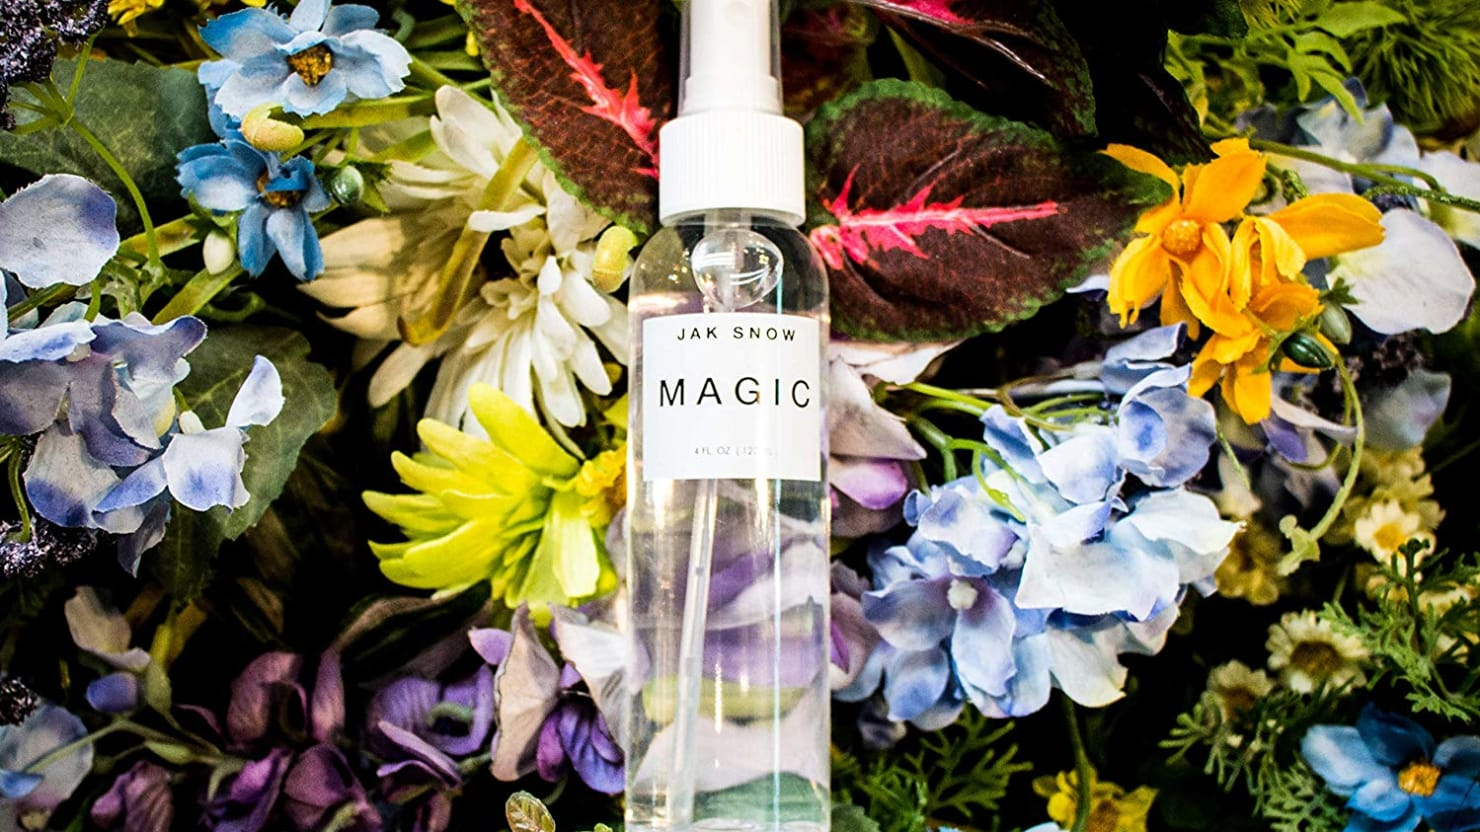 The Jak Snow Magic Spray Isn't an Exaggeration. It Magically Makes Your Shoes Waterproof